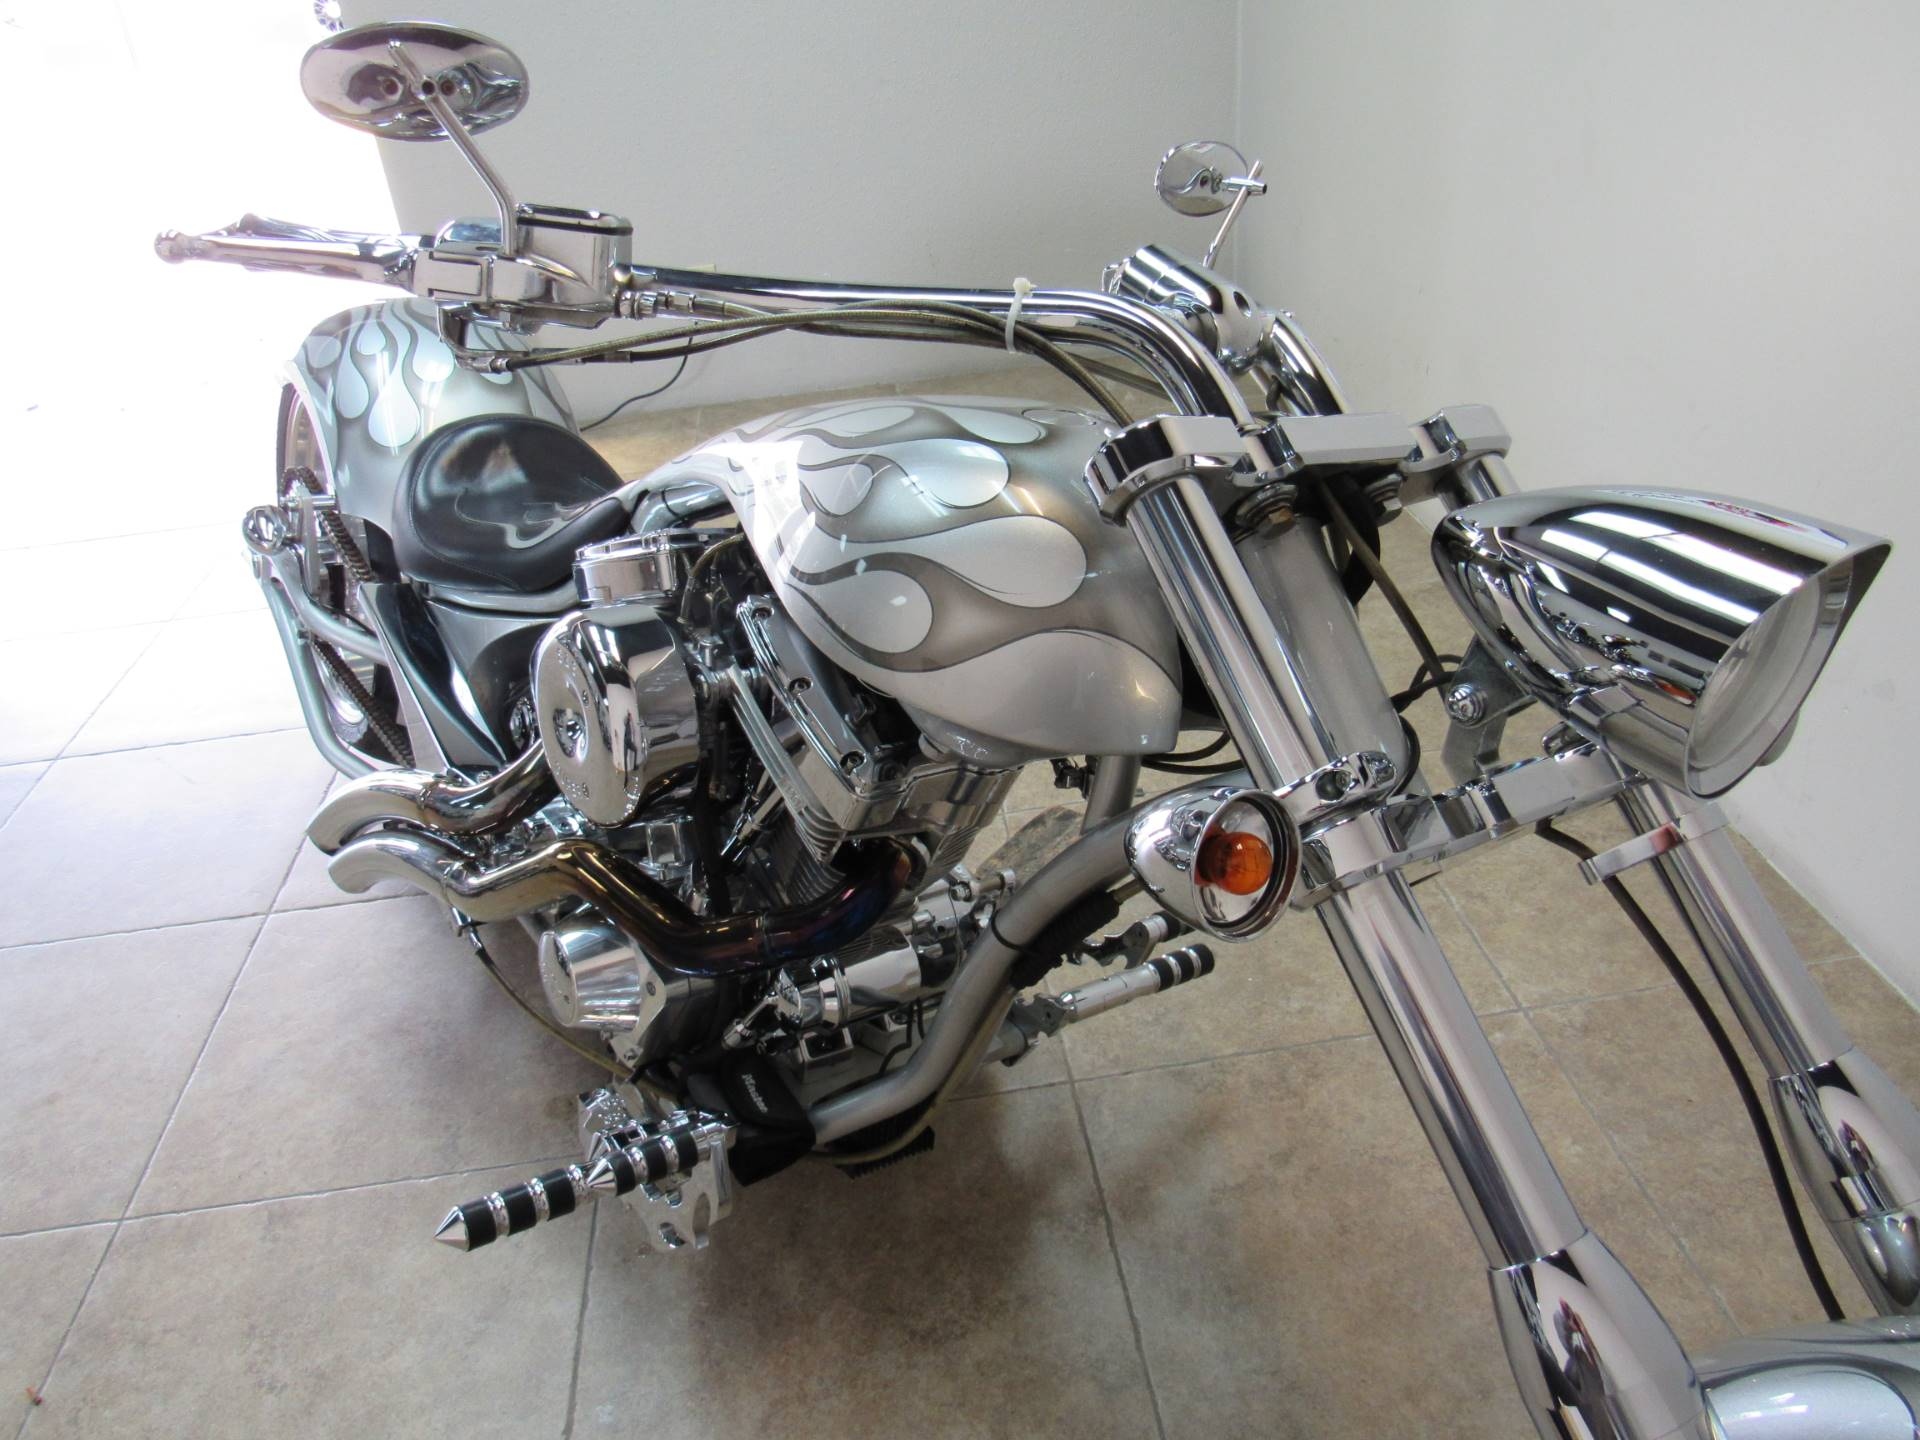 2006 Big Bear Choppers Sled Prostreet (CA) - [SLEDPROSTREET] - Silver in Temecula, California - Photo 12